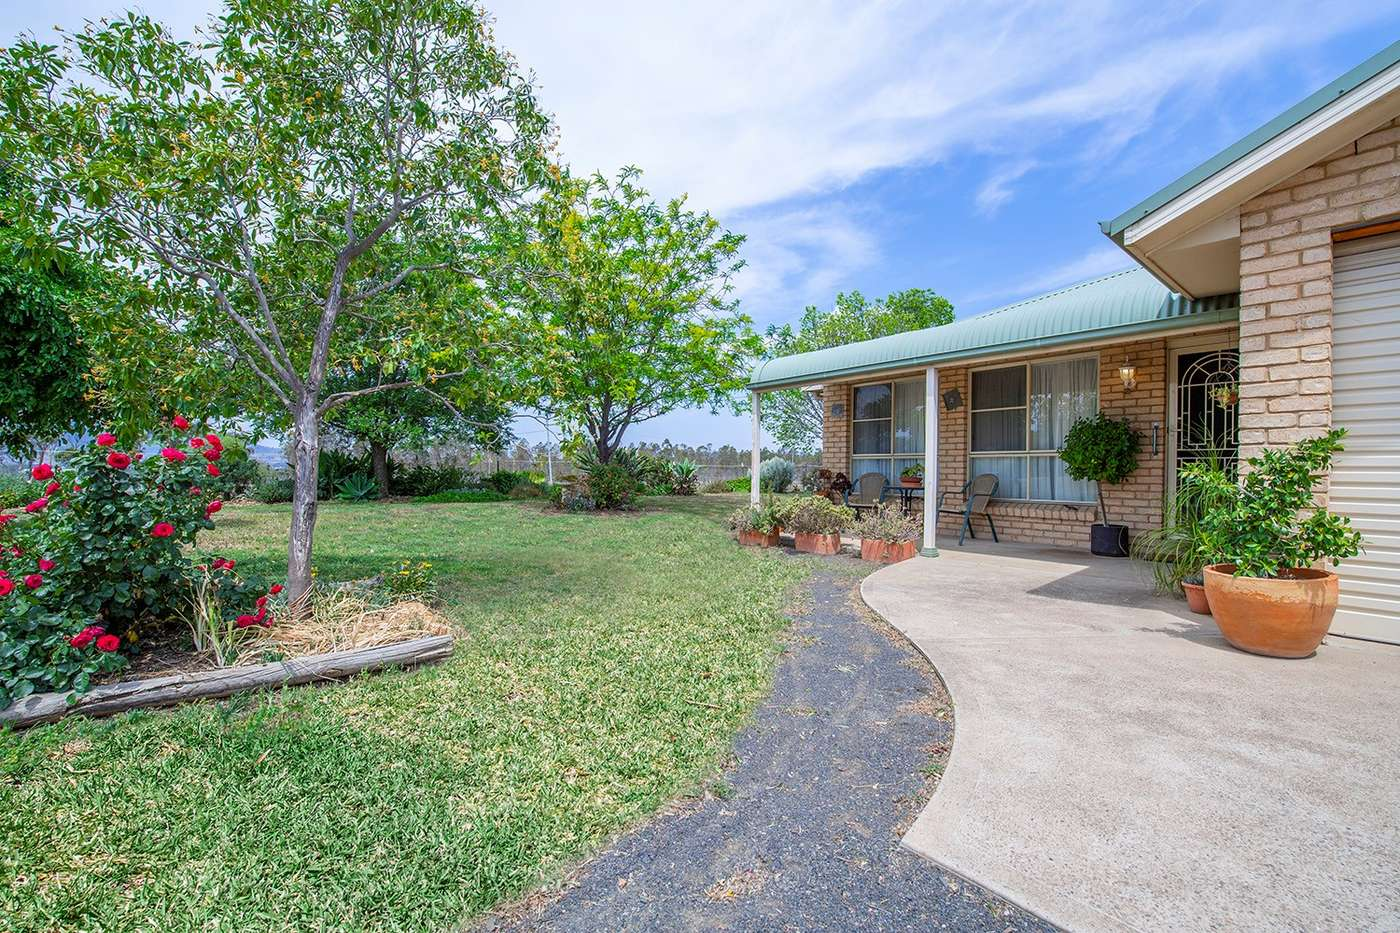 Main view of Homely house listing, 9 Allan Cunningham Road, Scone, NSW 2337